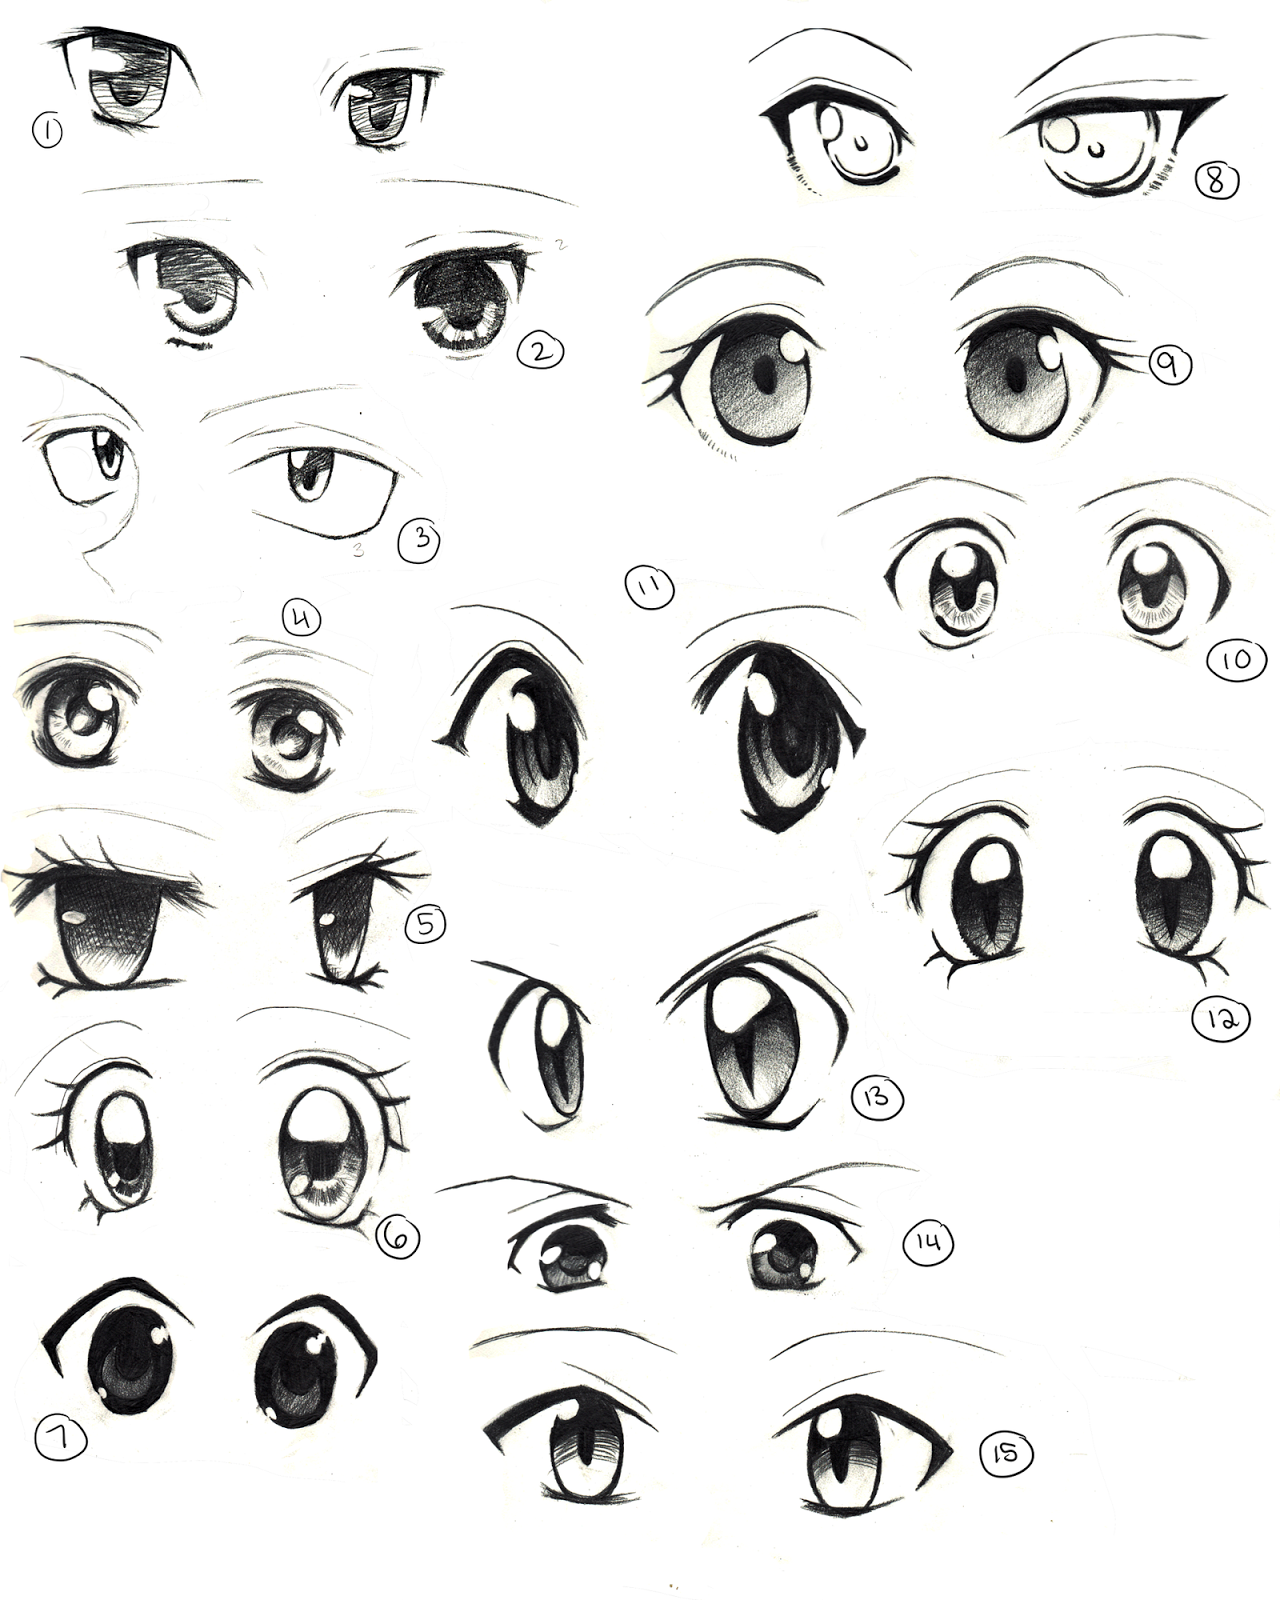 anime_eyes_practice_by_saflamd3drebb.png 1'280×1'600